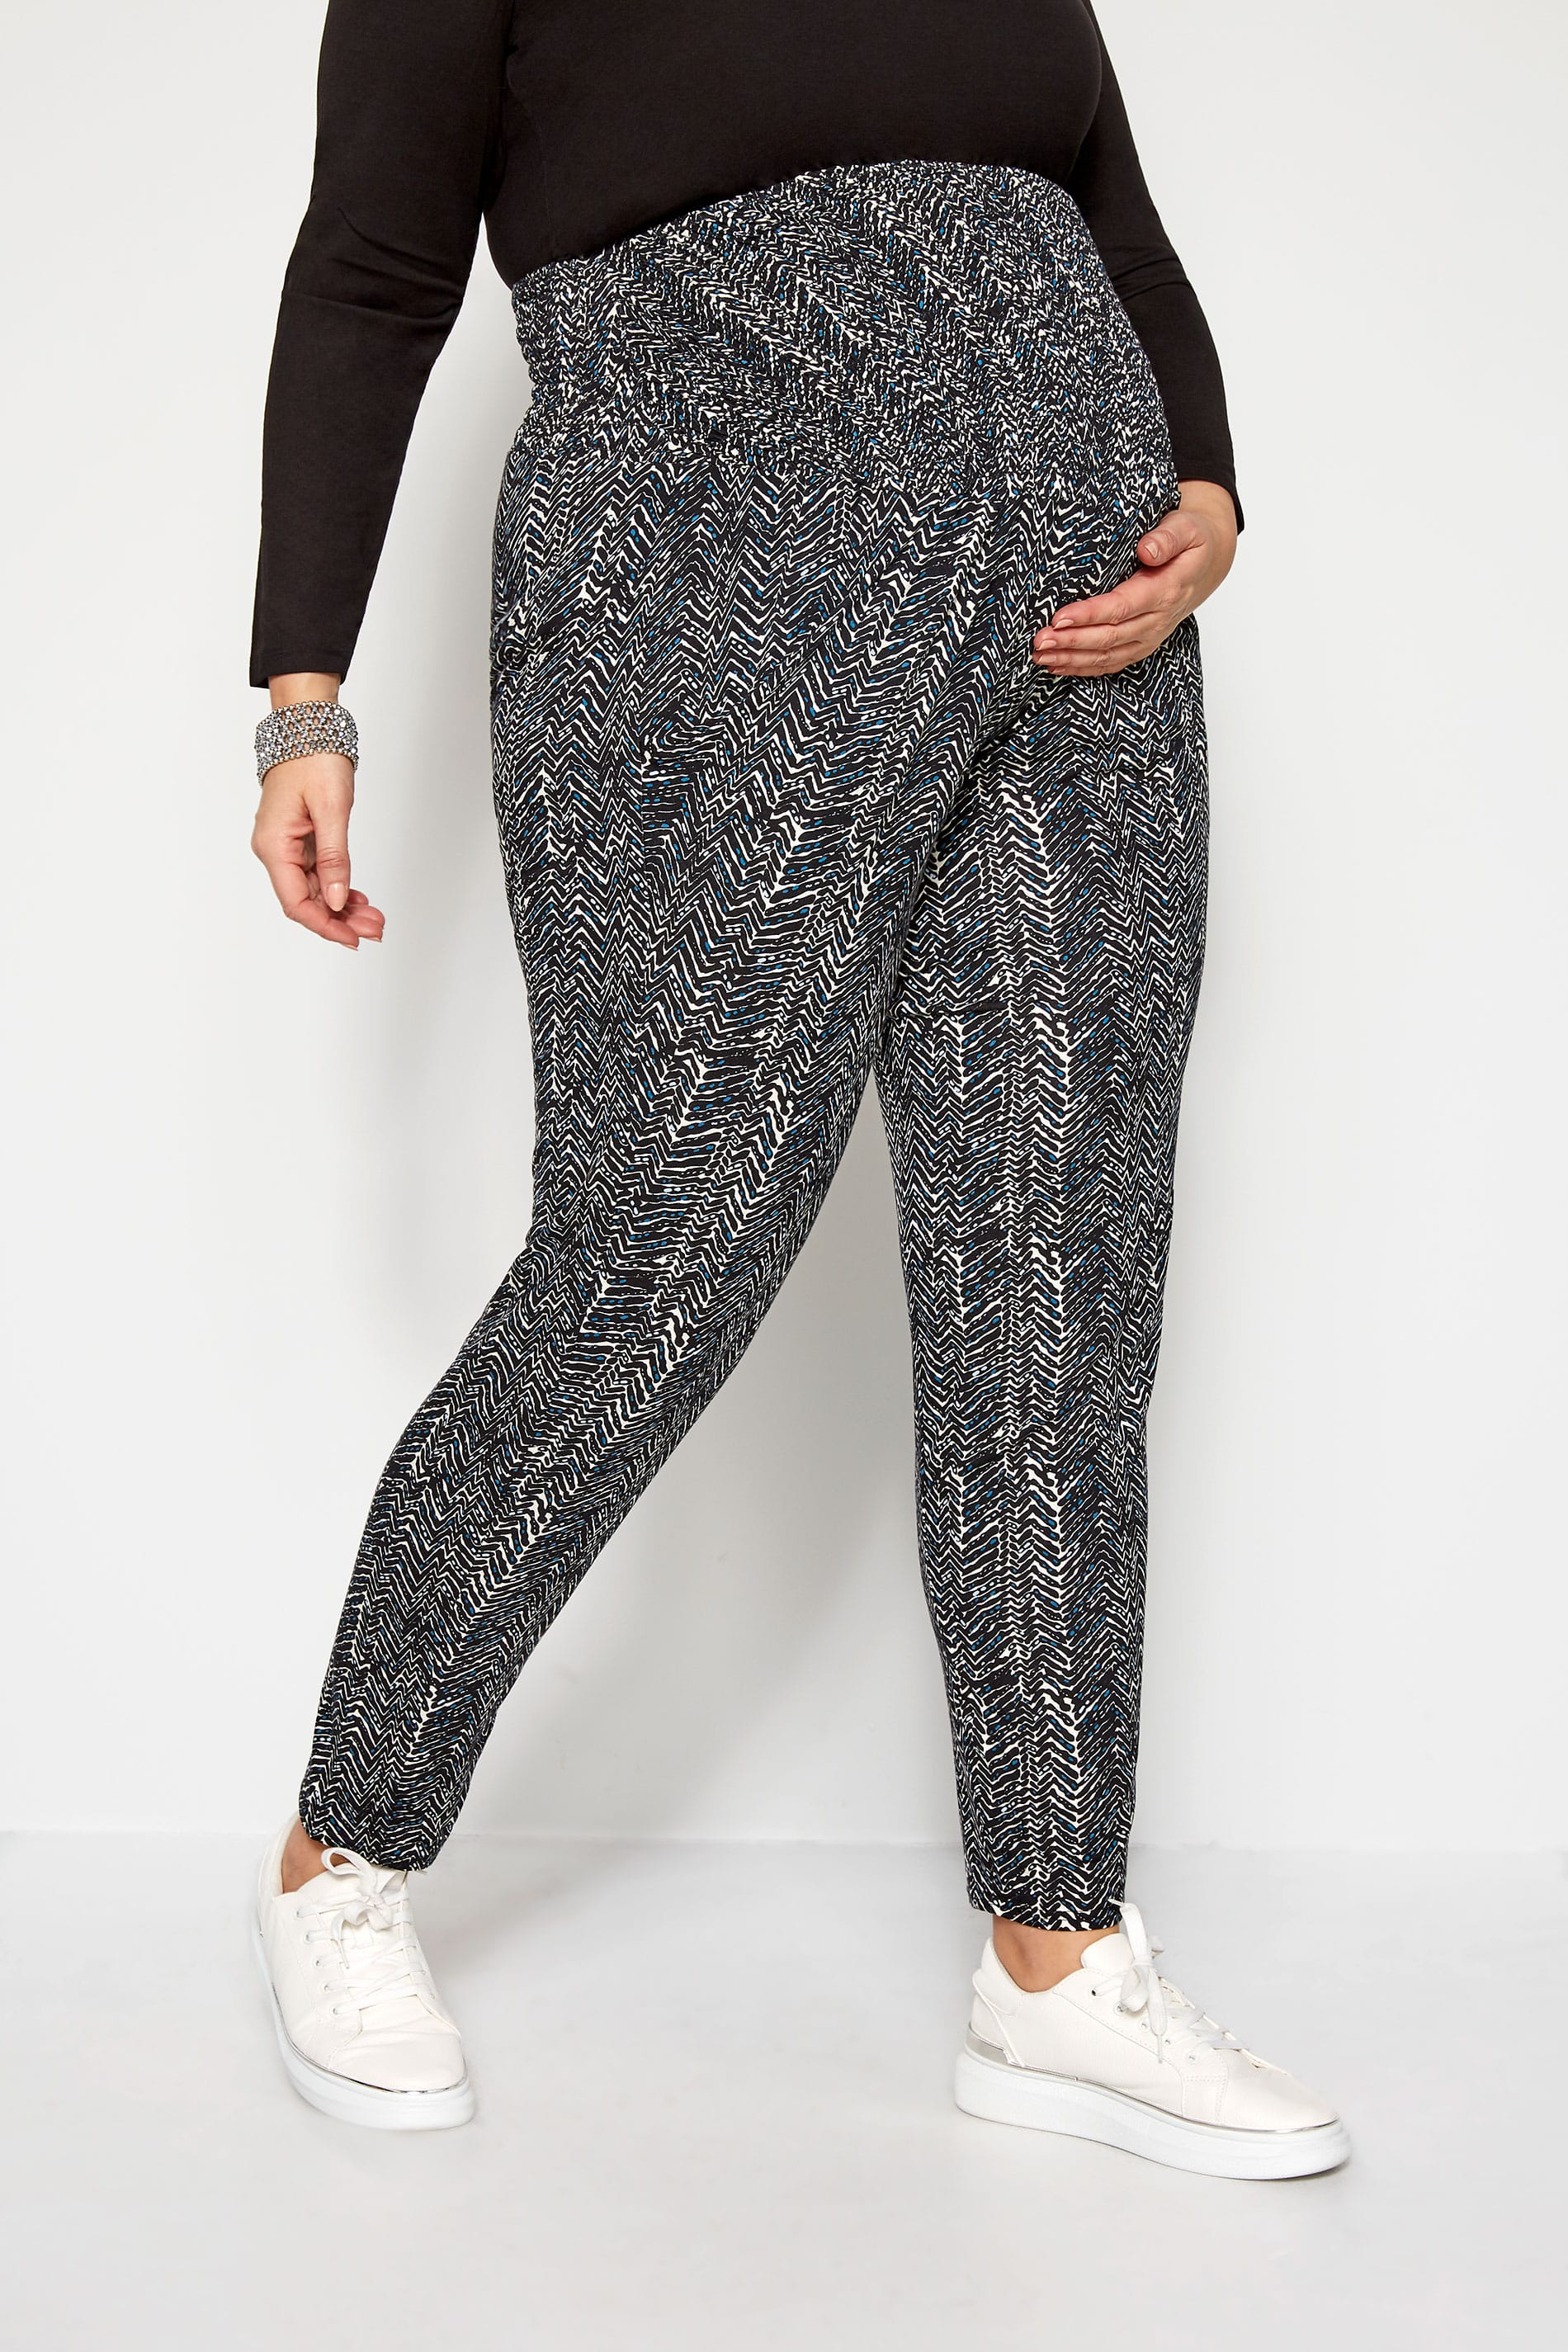 BUMP IT UP MATERNITY - Zwarte broek met aztec print